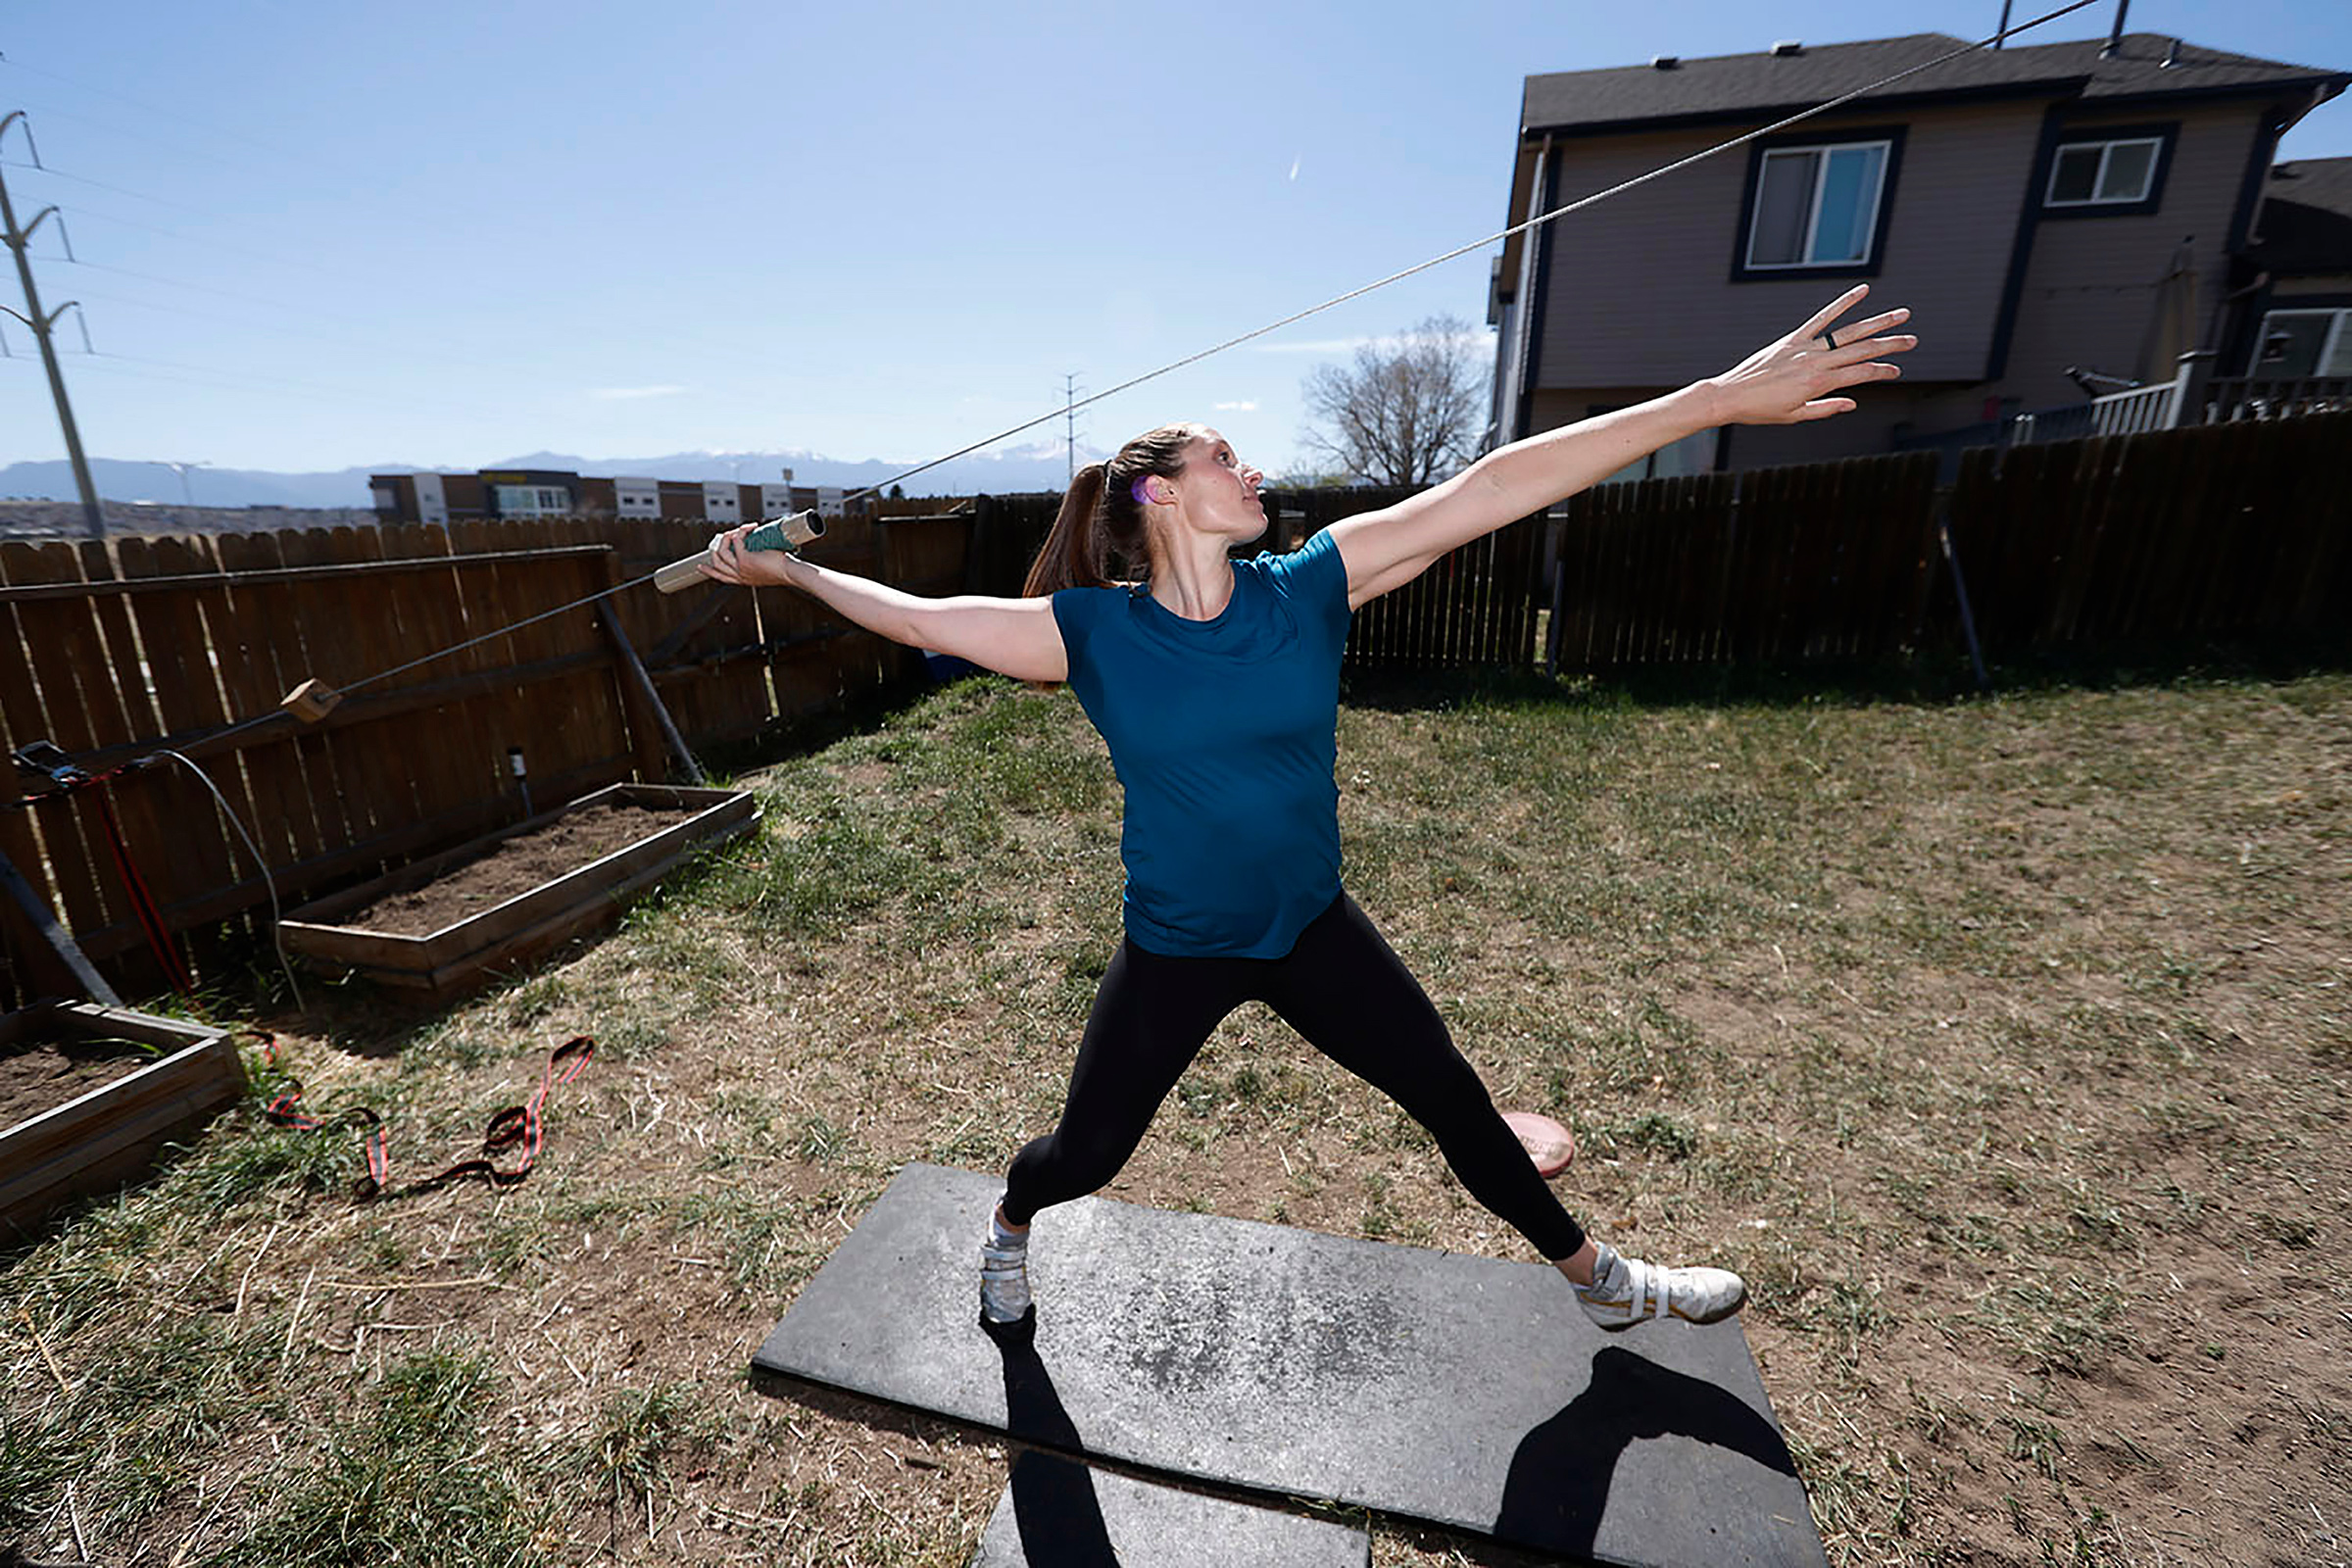 Winger uses a cable system to simulate throwing a javelin as she trains outside her home in Colorado Springs in April